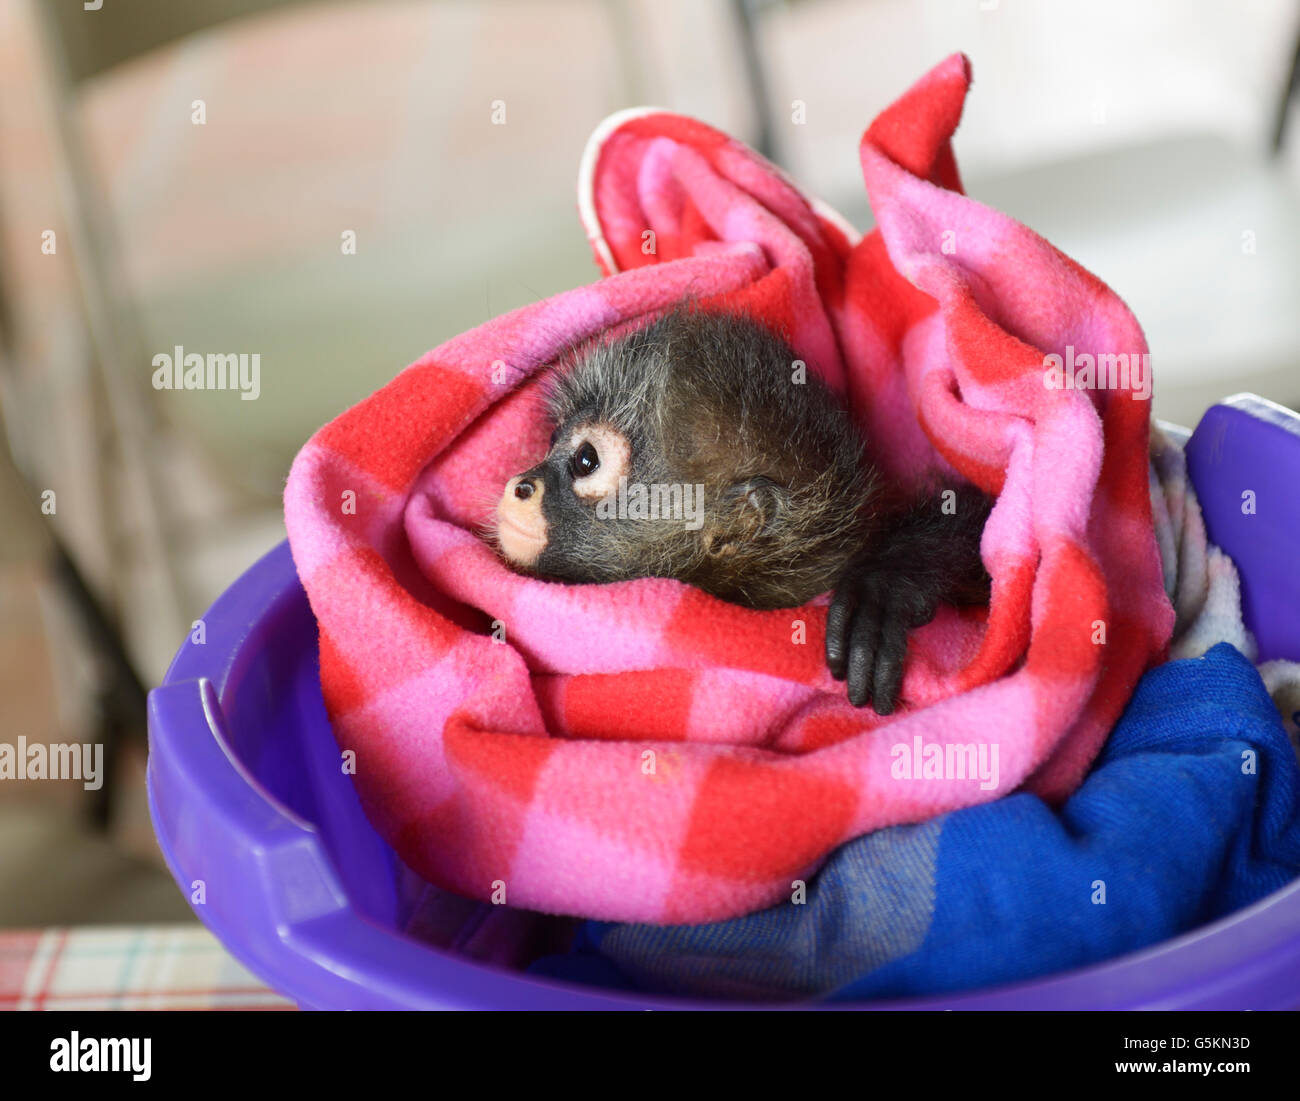 Baby spider monkey, ateles geoffroyi, at a wildlife rehabilitation center, CR. See 'Description' for location - Stock Image